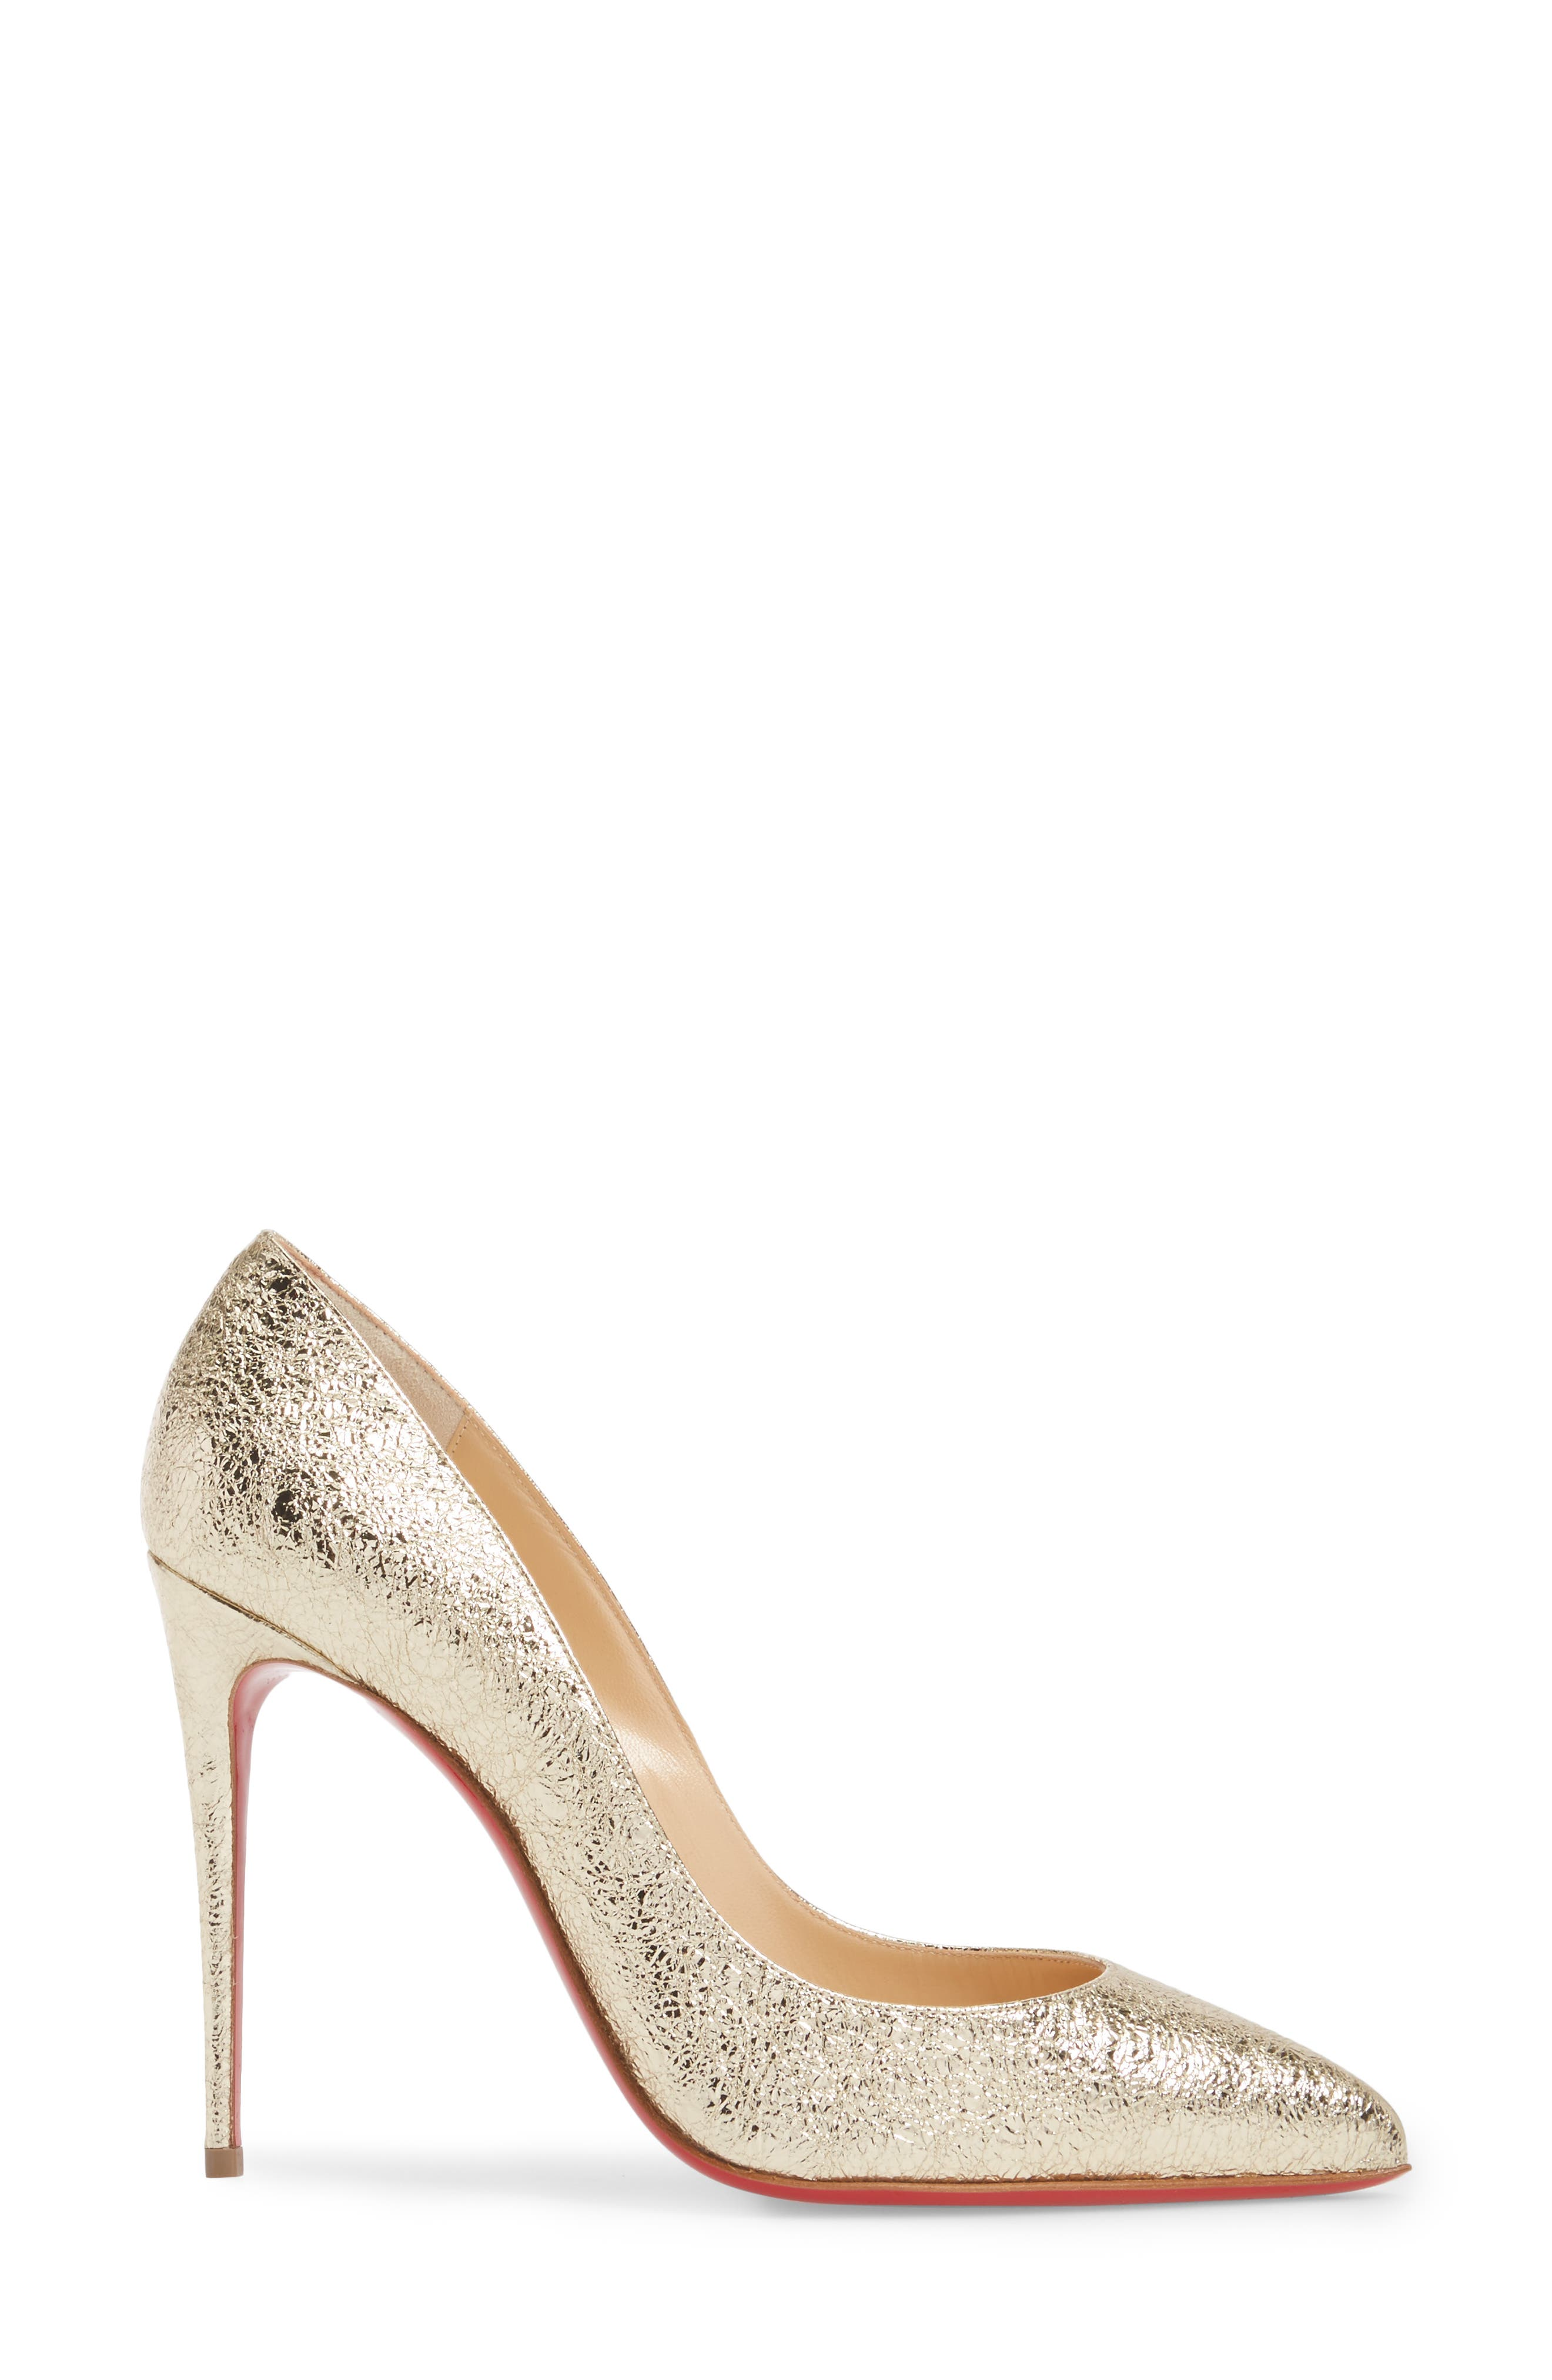 Pigalle Follies Pointy Toe Pump,                             Alternate thumbnail 3, color,                             Platine